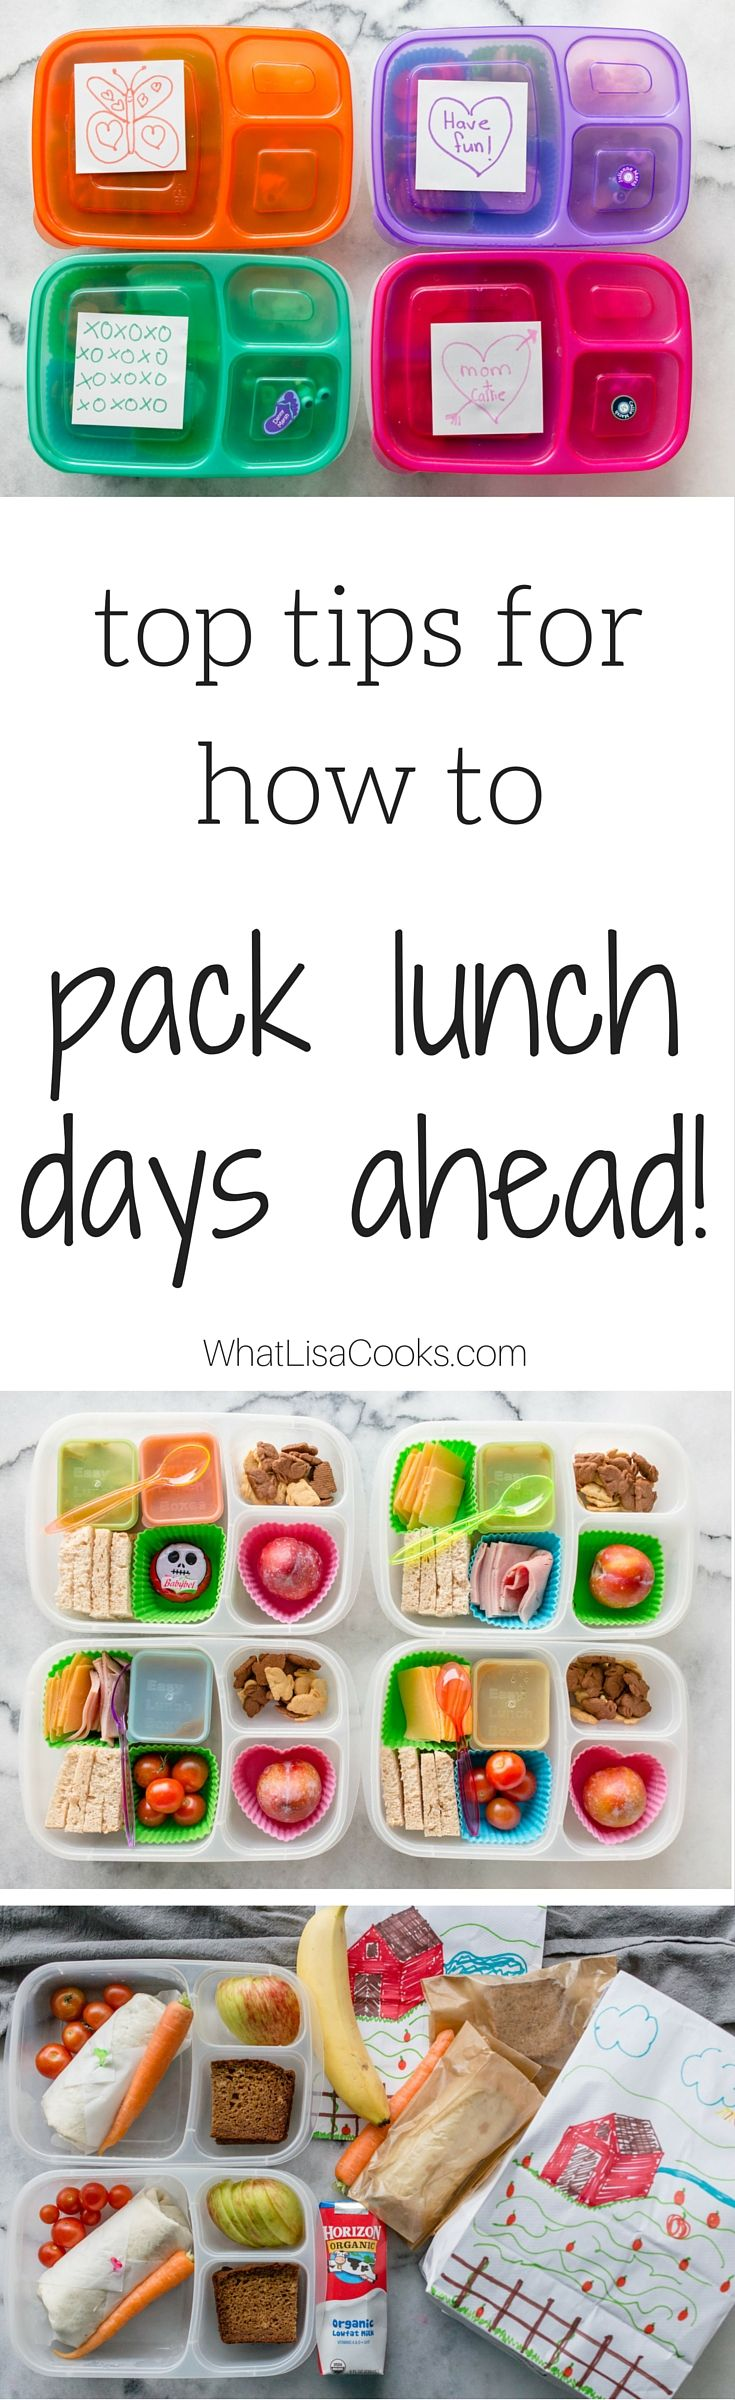 767 best cute lunch ideas for kids images on pinterest